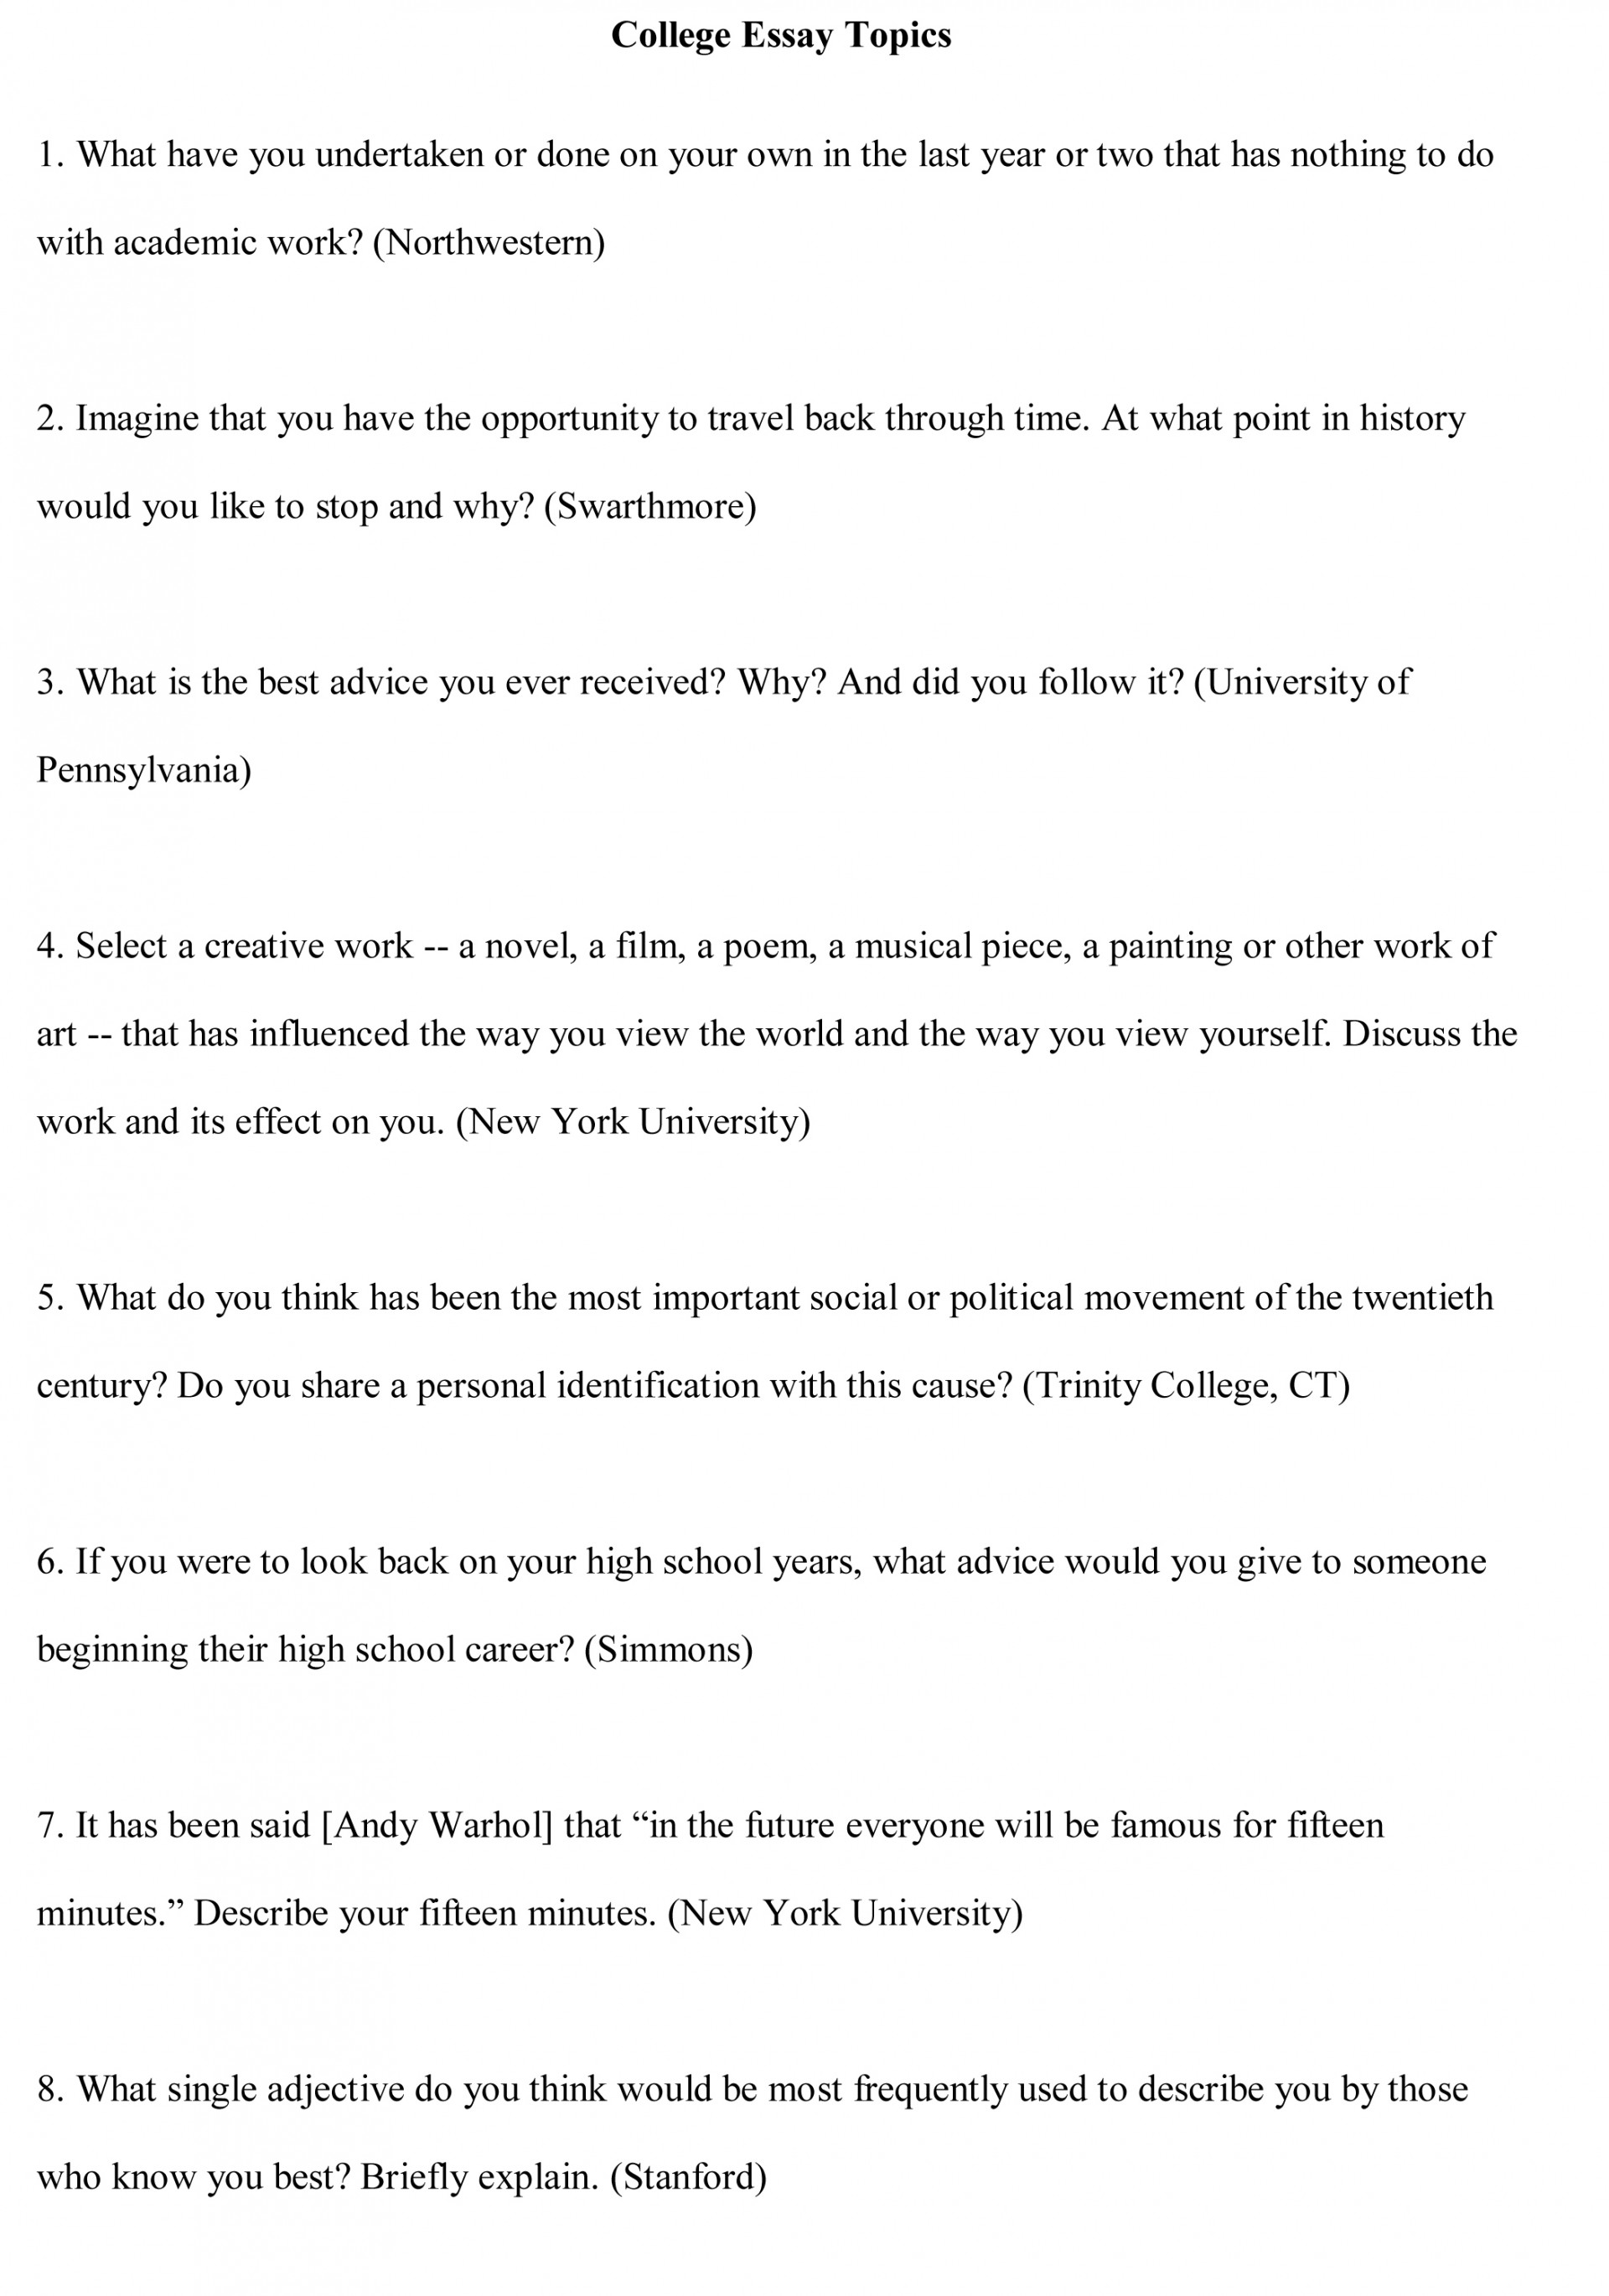 003 Help To Write Essay For Free Online College Topics Sample1 Unbelievable A 1920